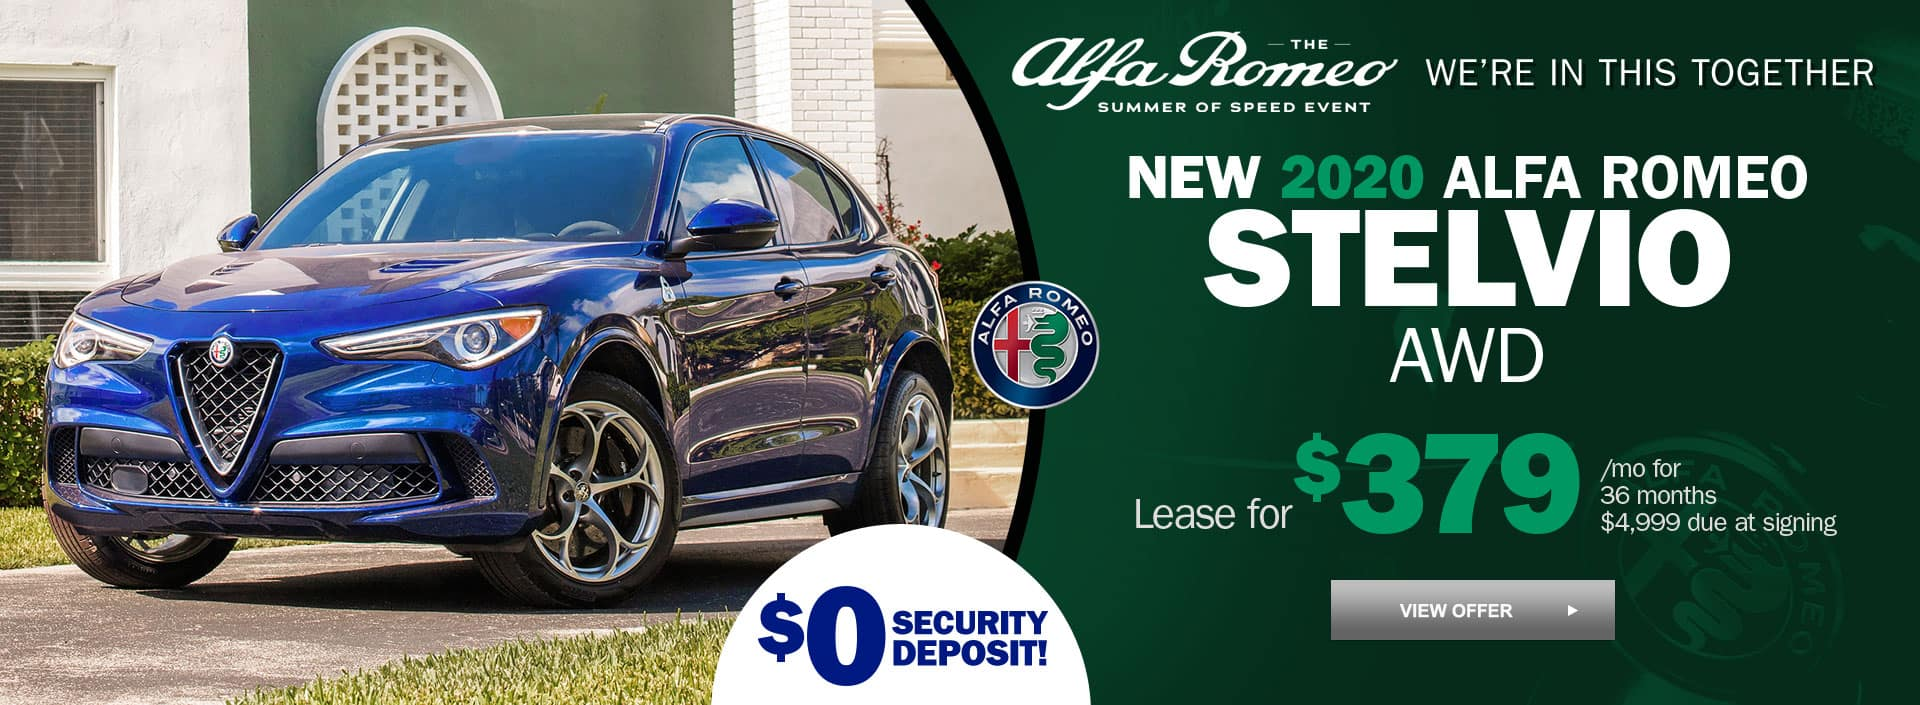 New 2020 alfa Romeo Stelvio AWD Sedan for $379 per month for 36 months